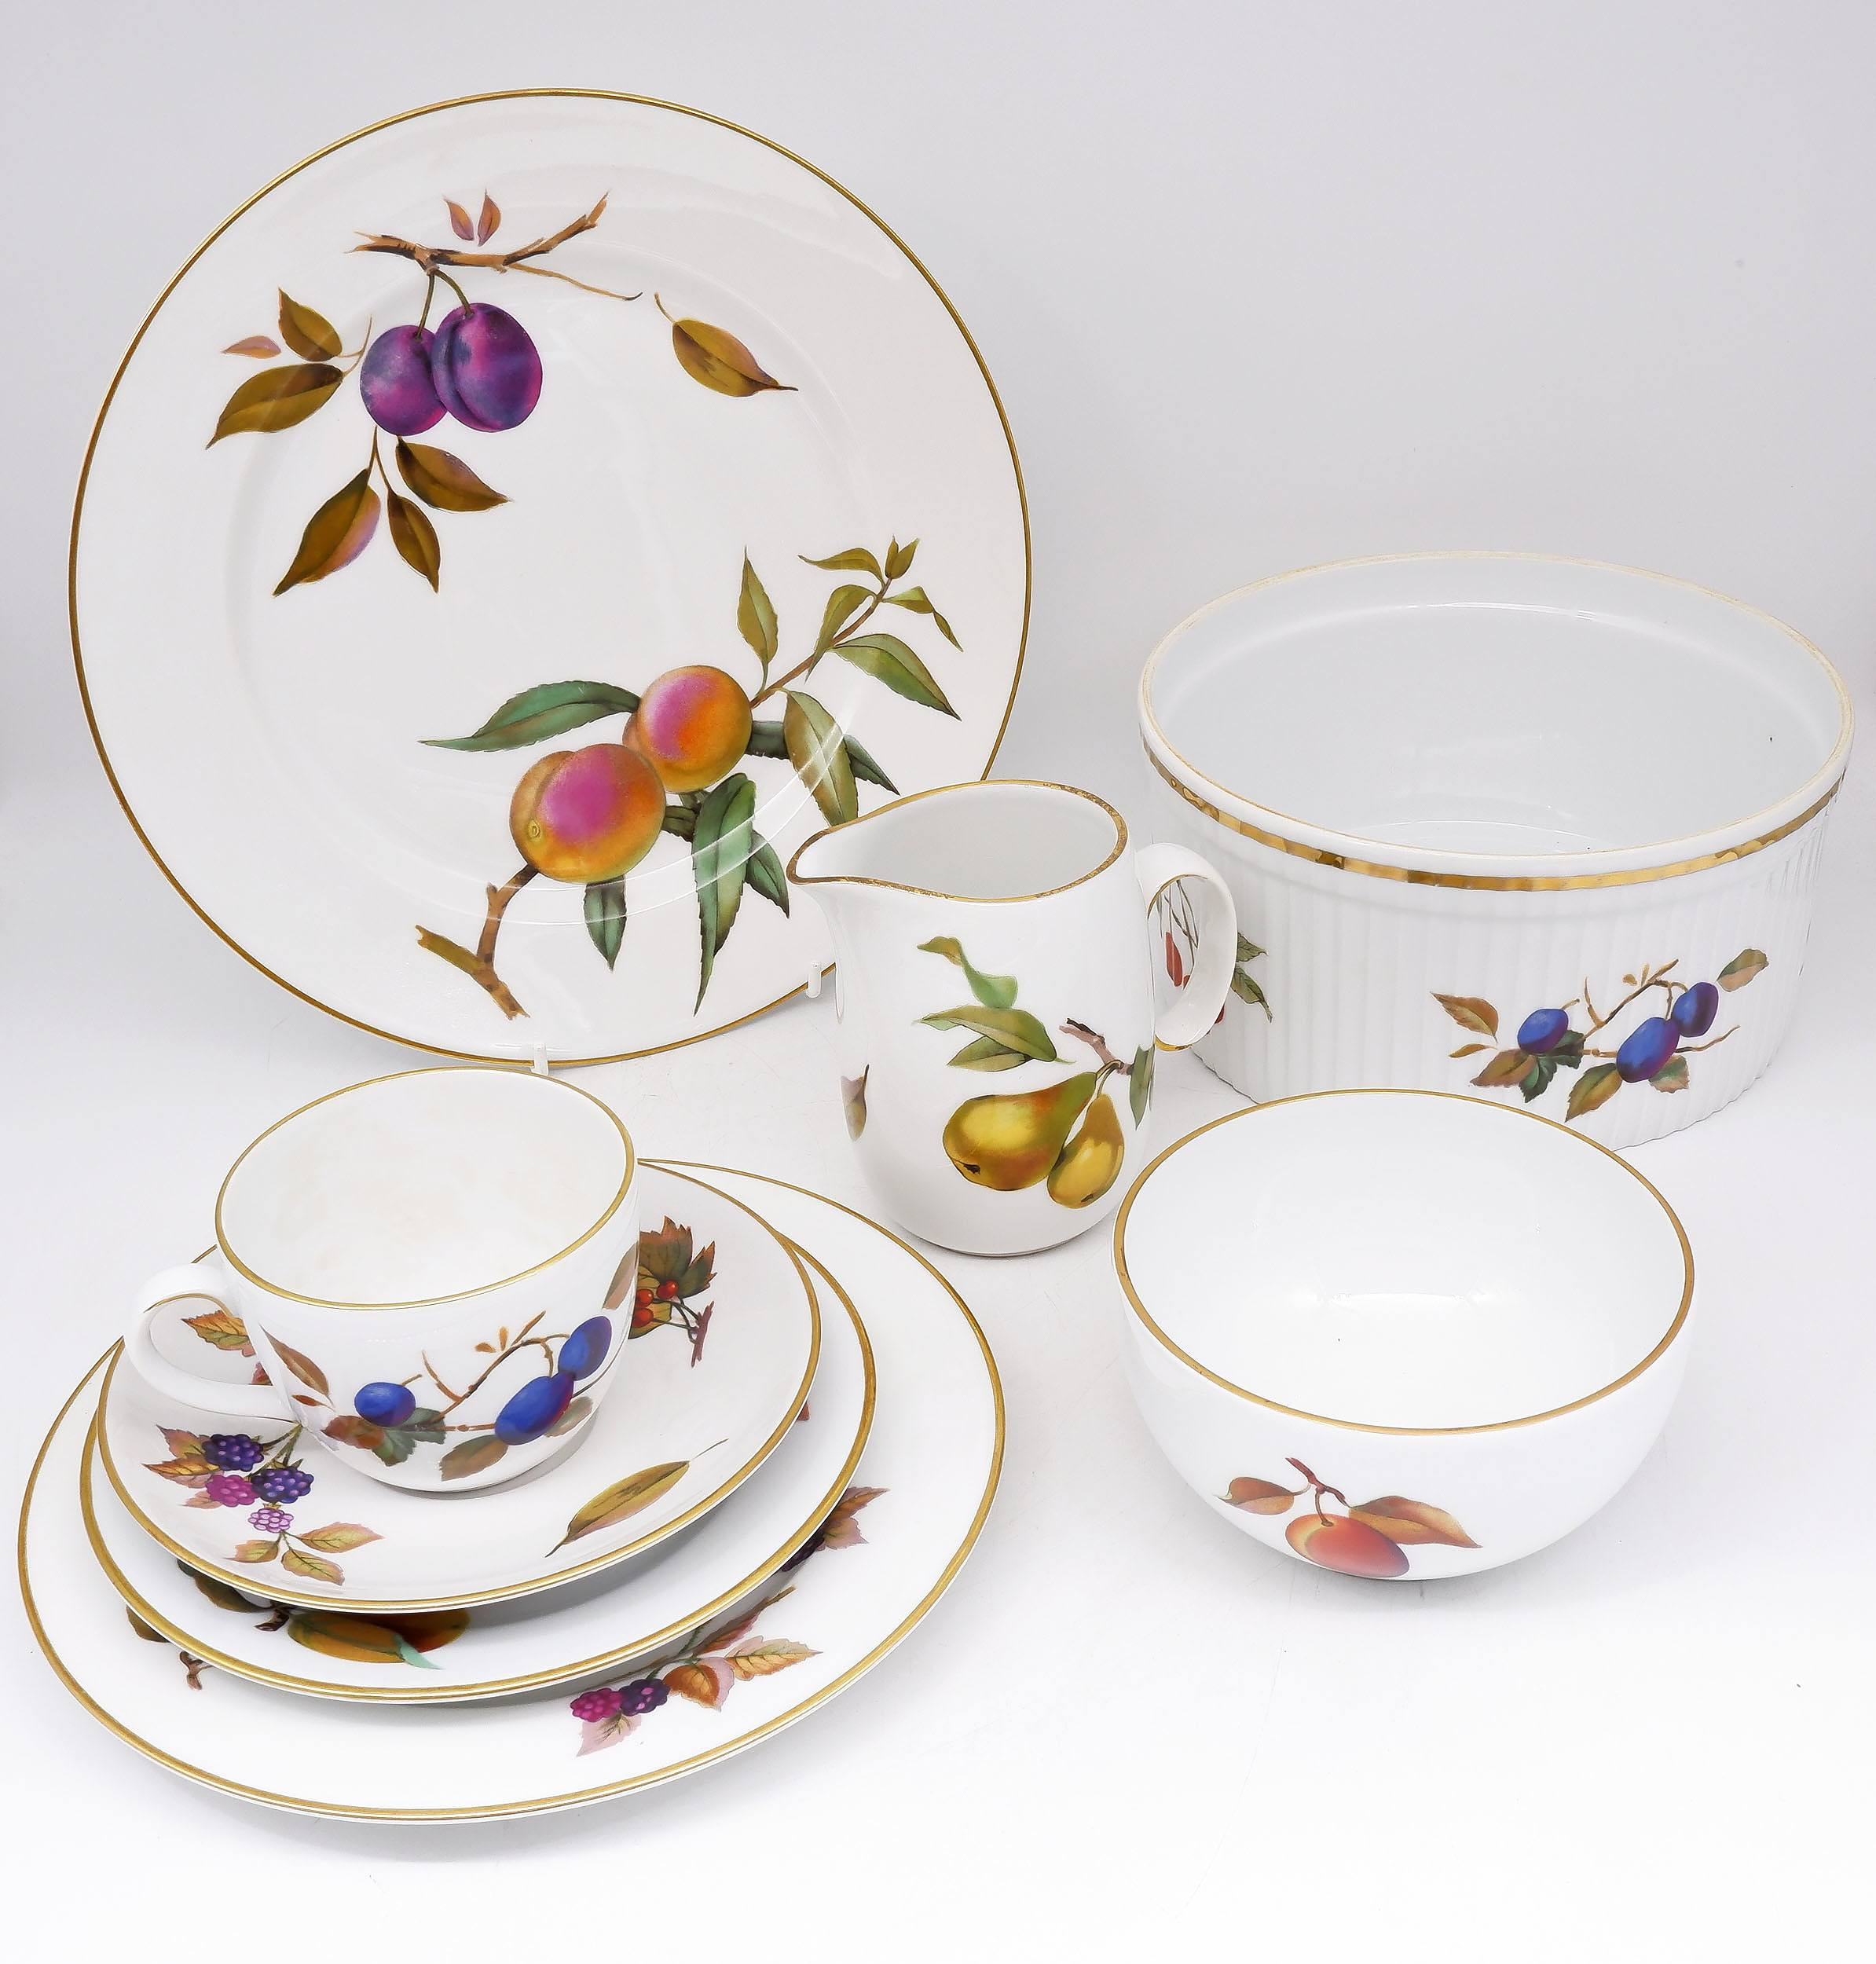 'Royal Worcester Evesham Gold Porcelain Dining Set for Twelve with Serving Ware'